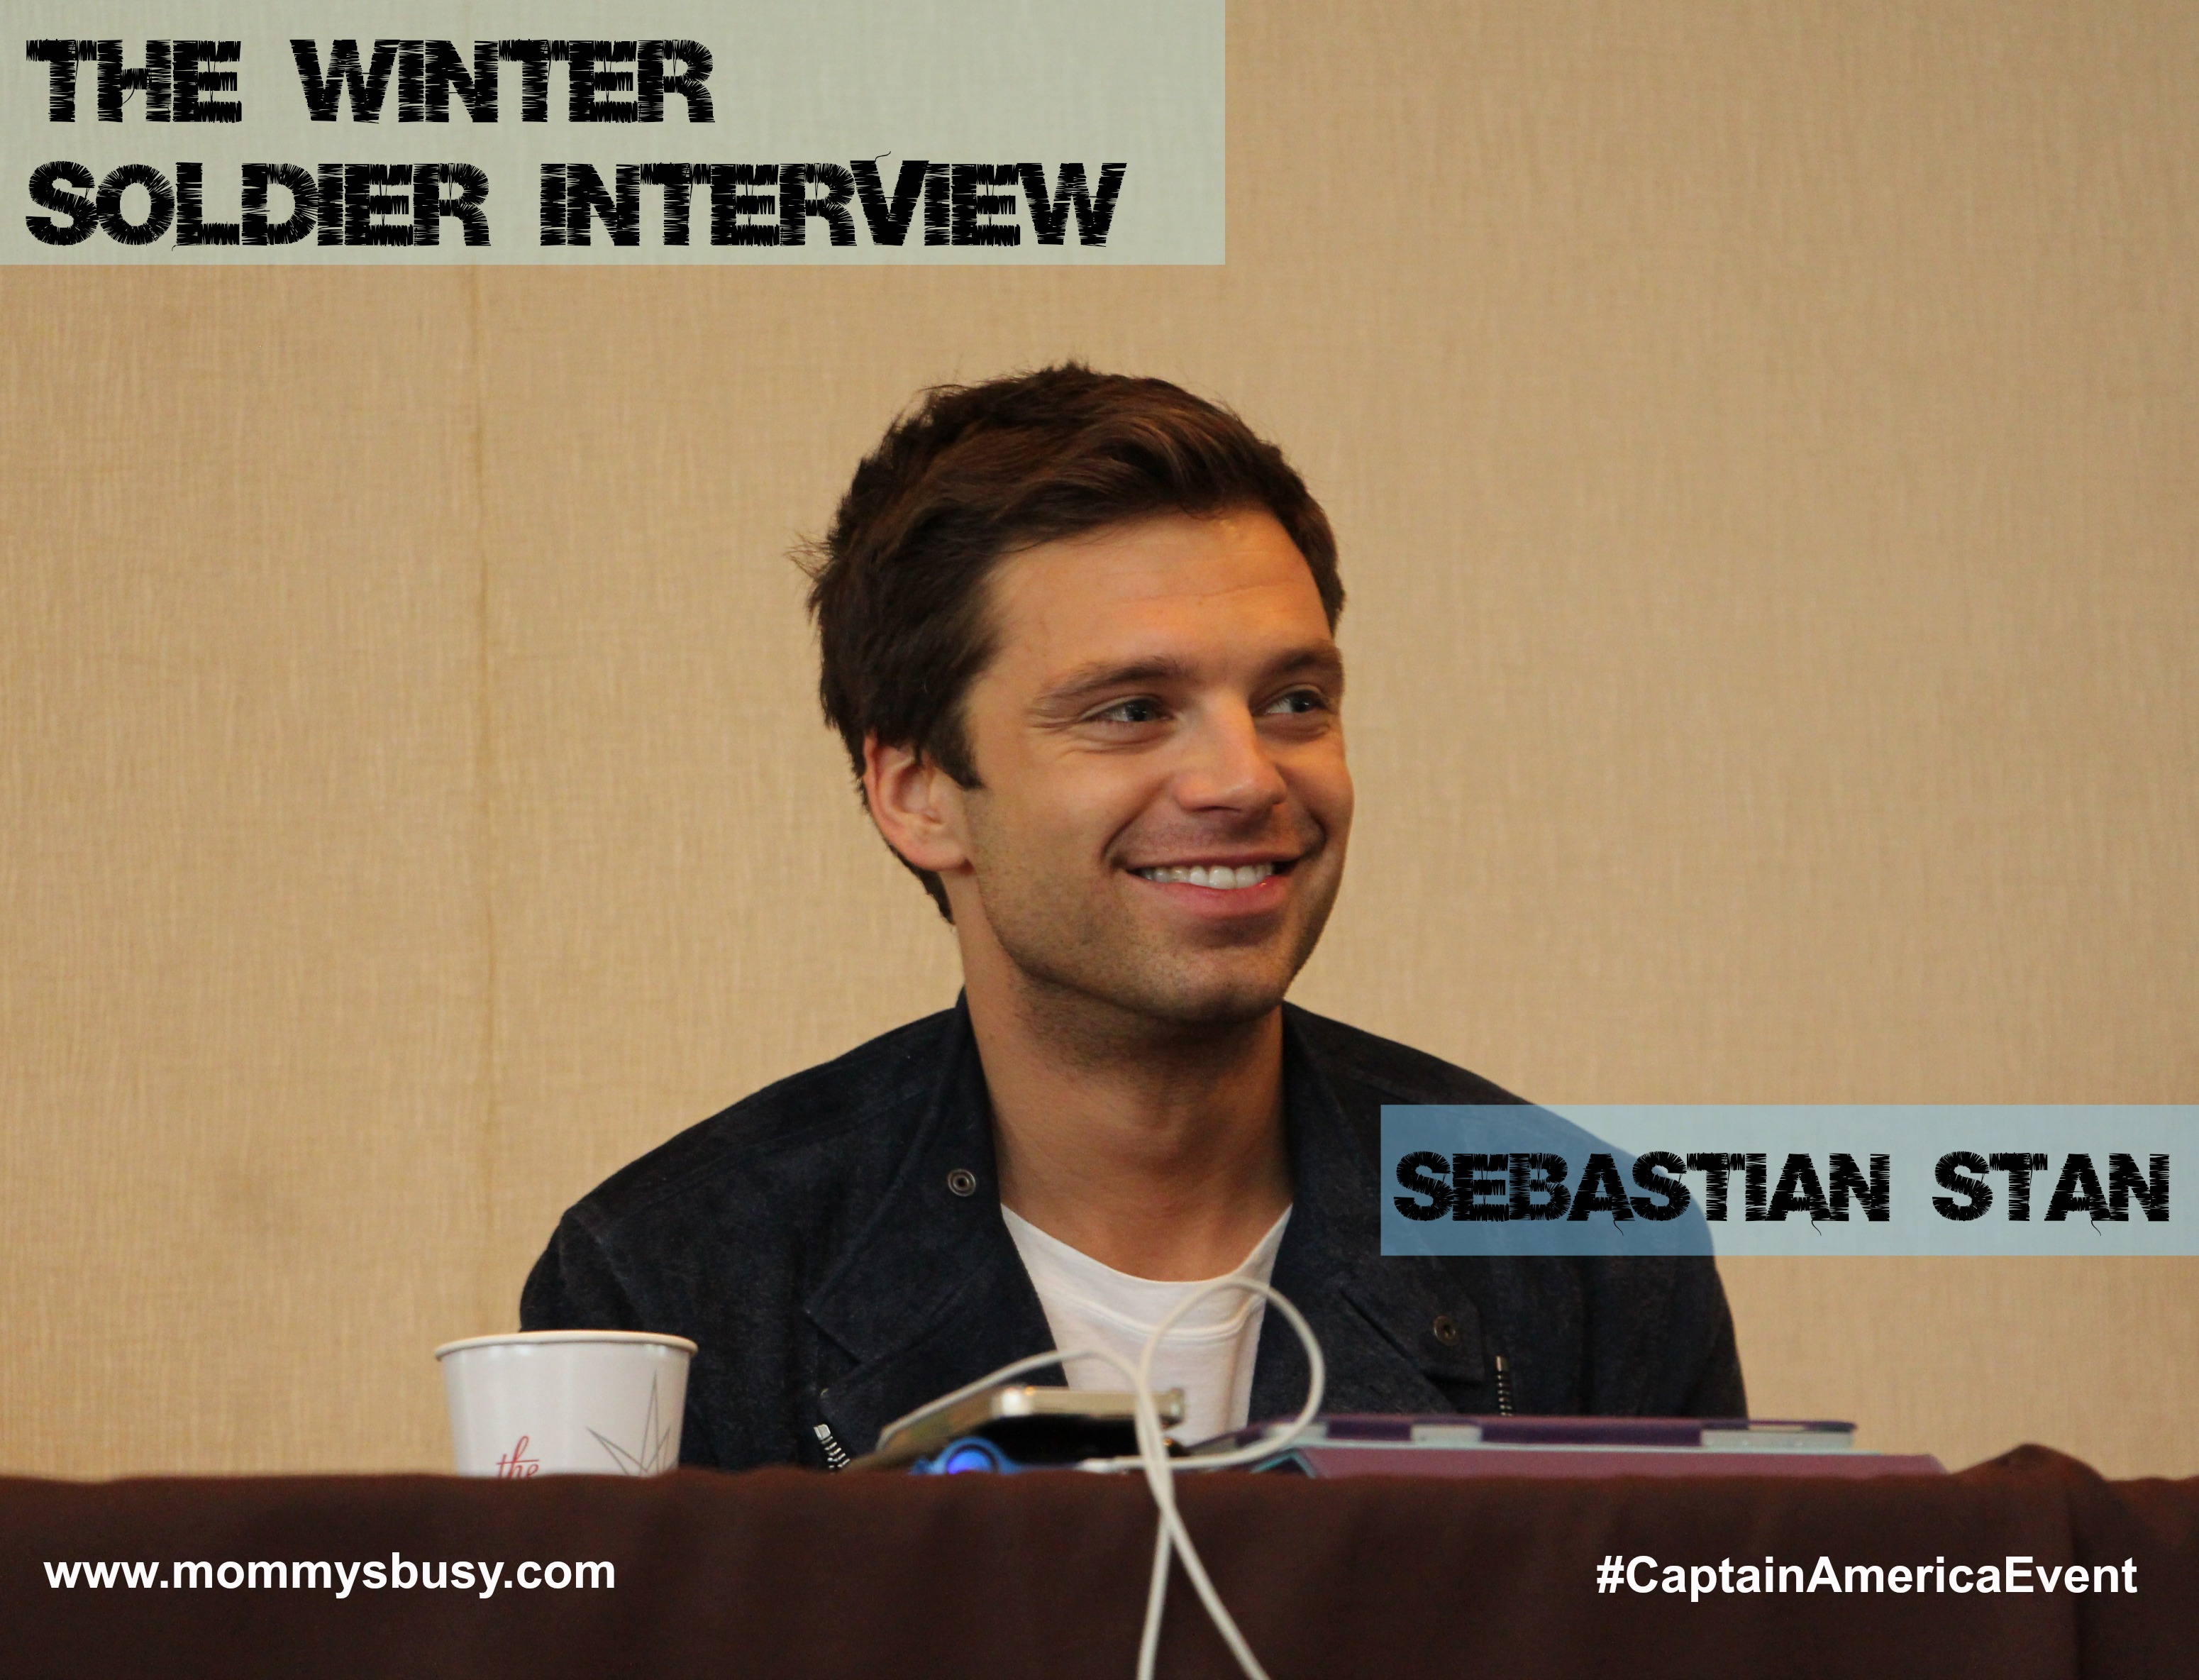 Sebastian Stan interview #CaptainAmericaEvent